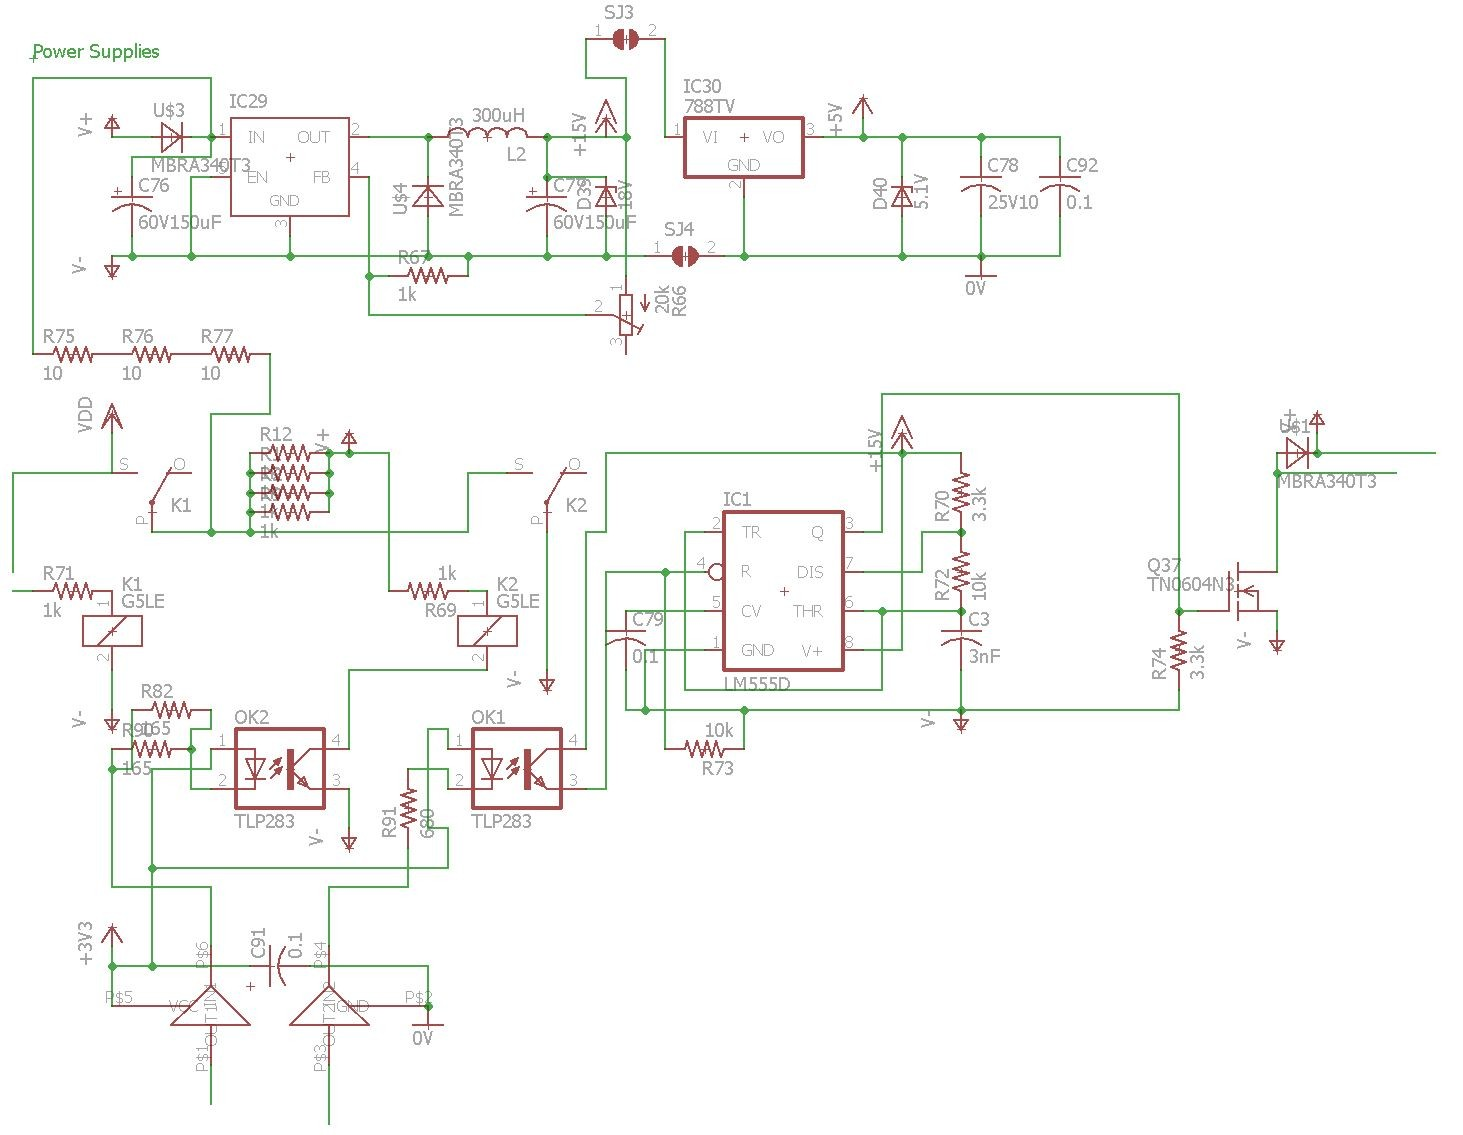 Power supplies schematic